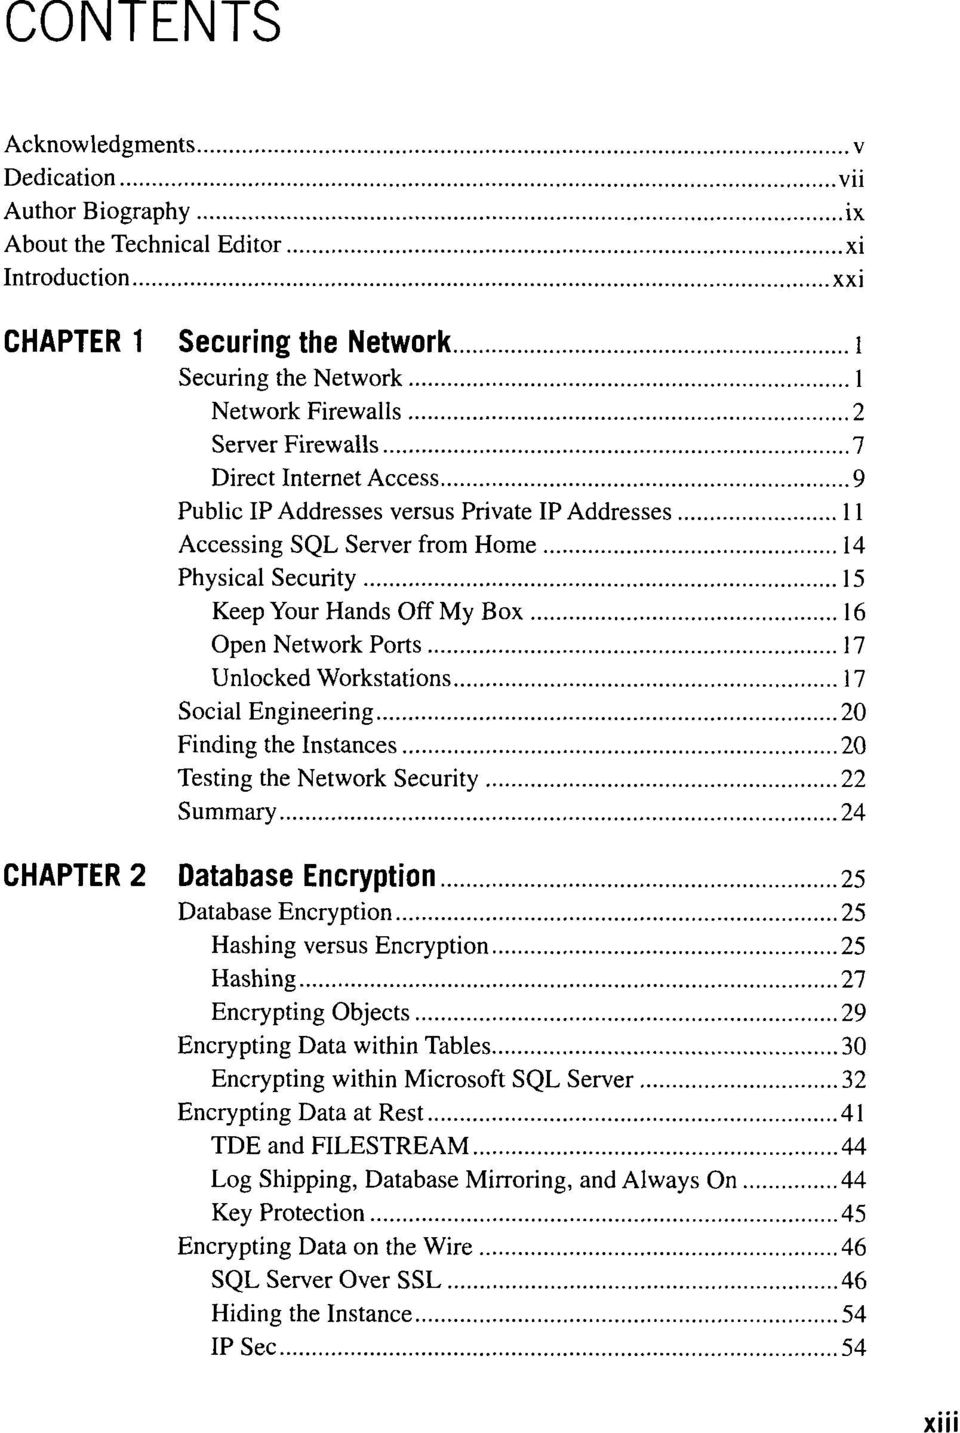 Unlocked Workstations 17 Social Engineering 20 Finding the Instances 20 Testing the Network Security 22 Summary 24 CHAPTER 2 Database Encryption 25 Database Encryption 25 Hashing versus Encryption 25